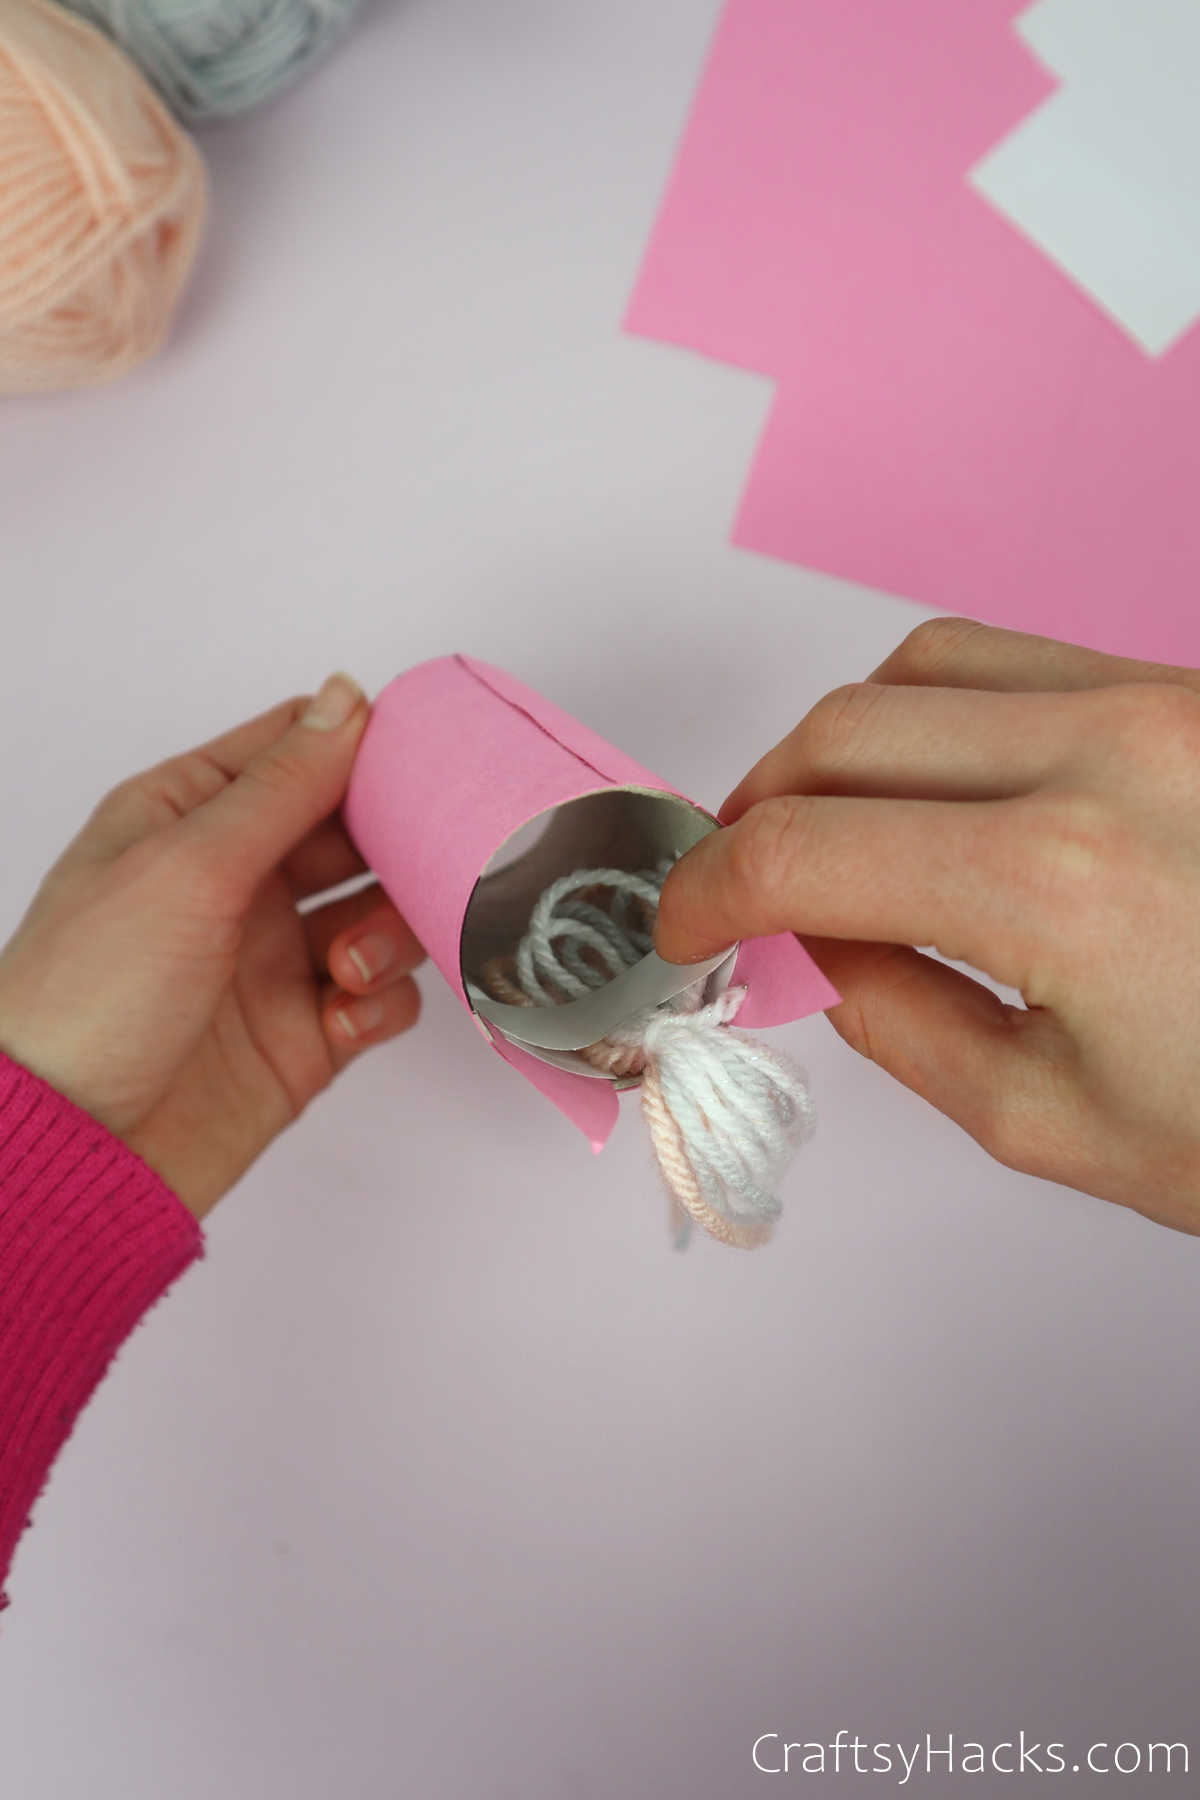 attaching yarn to paper roll